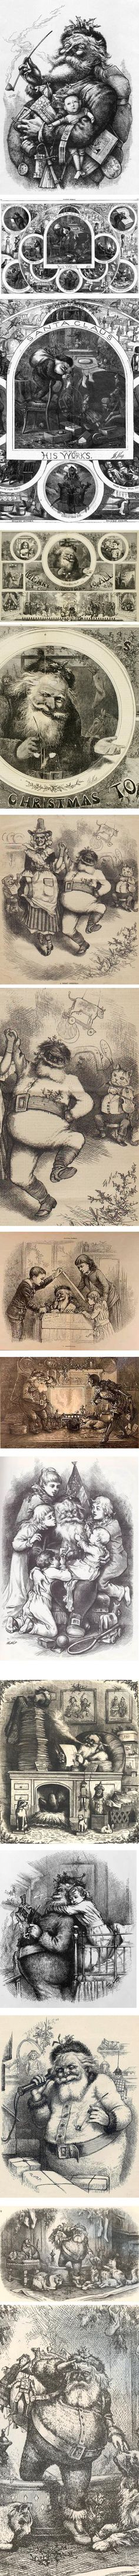 Thomas Nast's Santa Claus illustrations